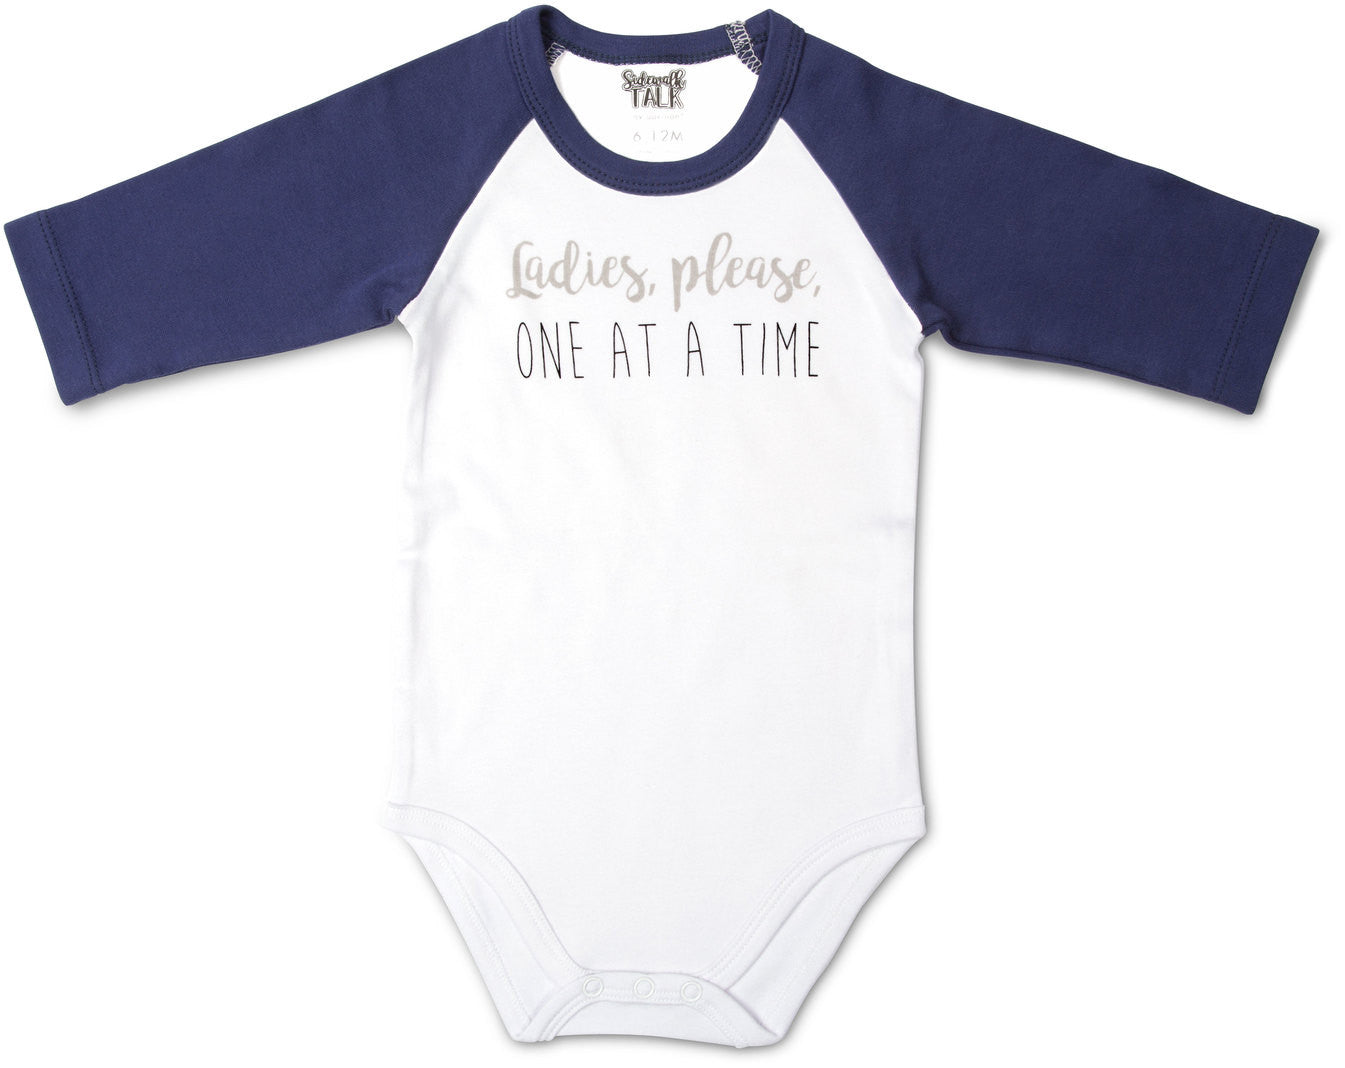 One At A Time 3/4 Sleeve Onesie 6-12 M Baby Onesie Sidewalk Talk - GigglesGear.com